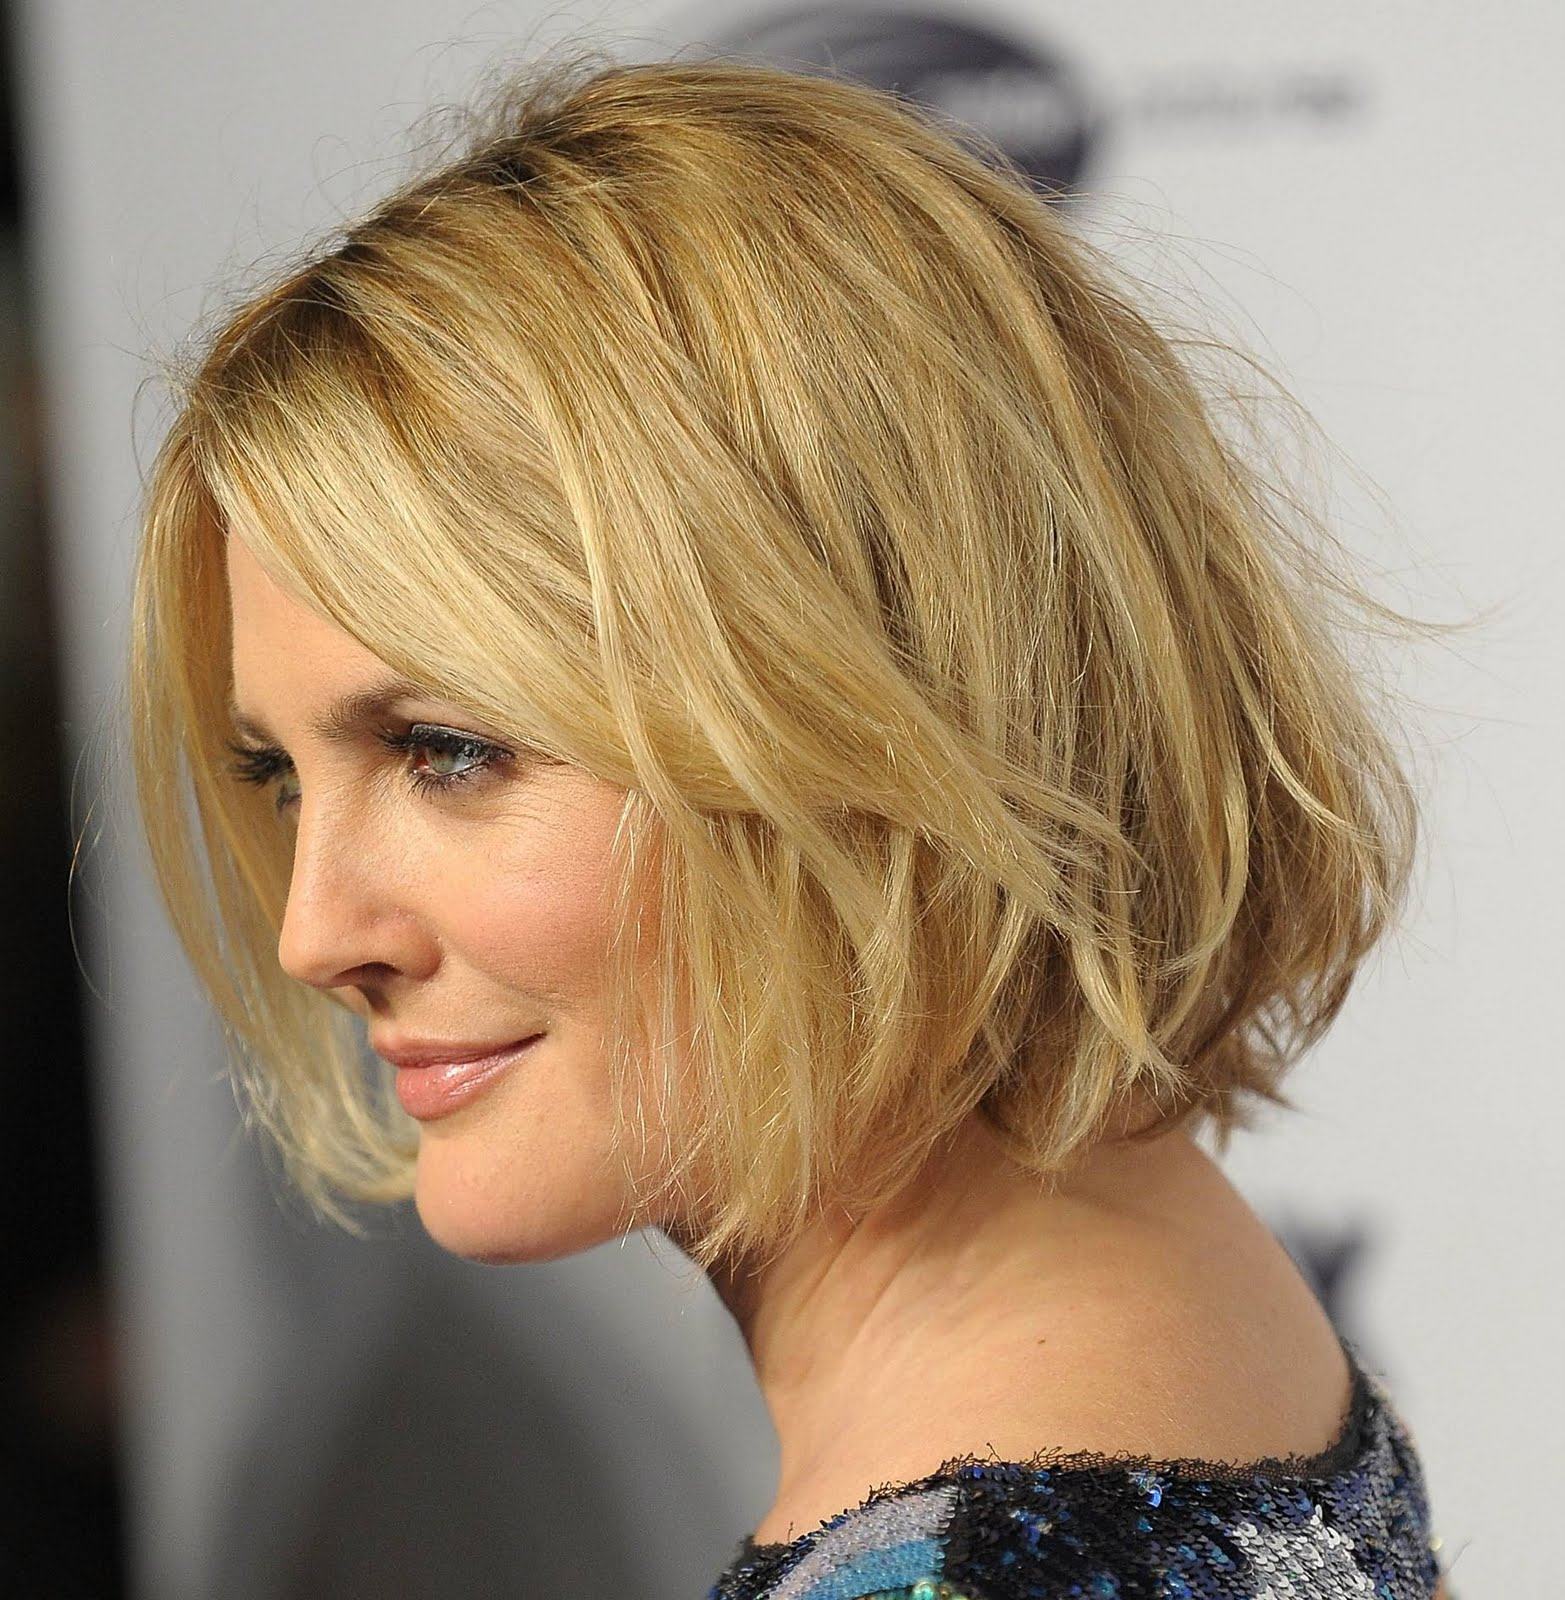 short hairstyles 2014: celebrity wavy bob hairstyle pics